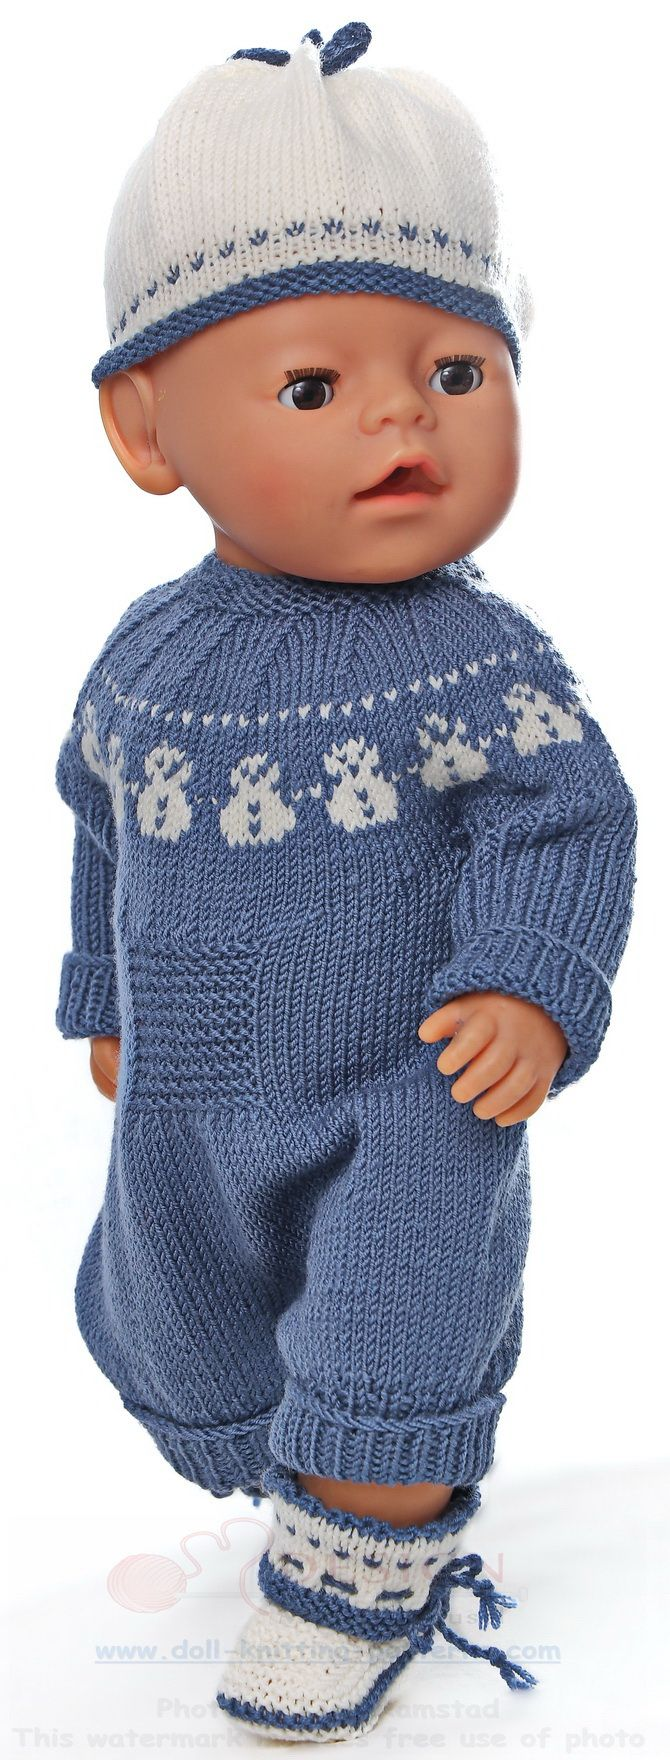 Welcome to Maalfrid Gausel doll knitting patterns store - the most ...